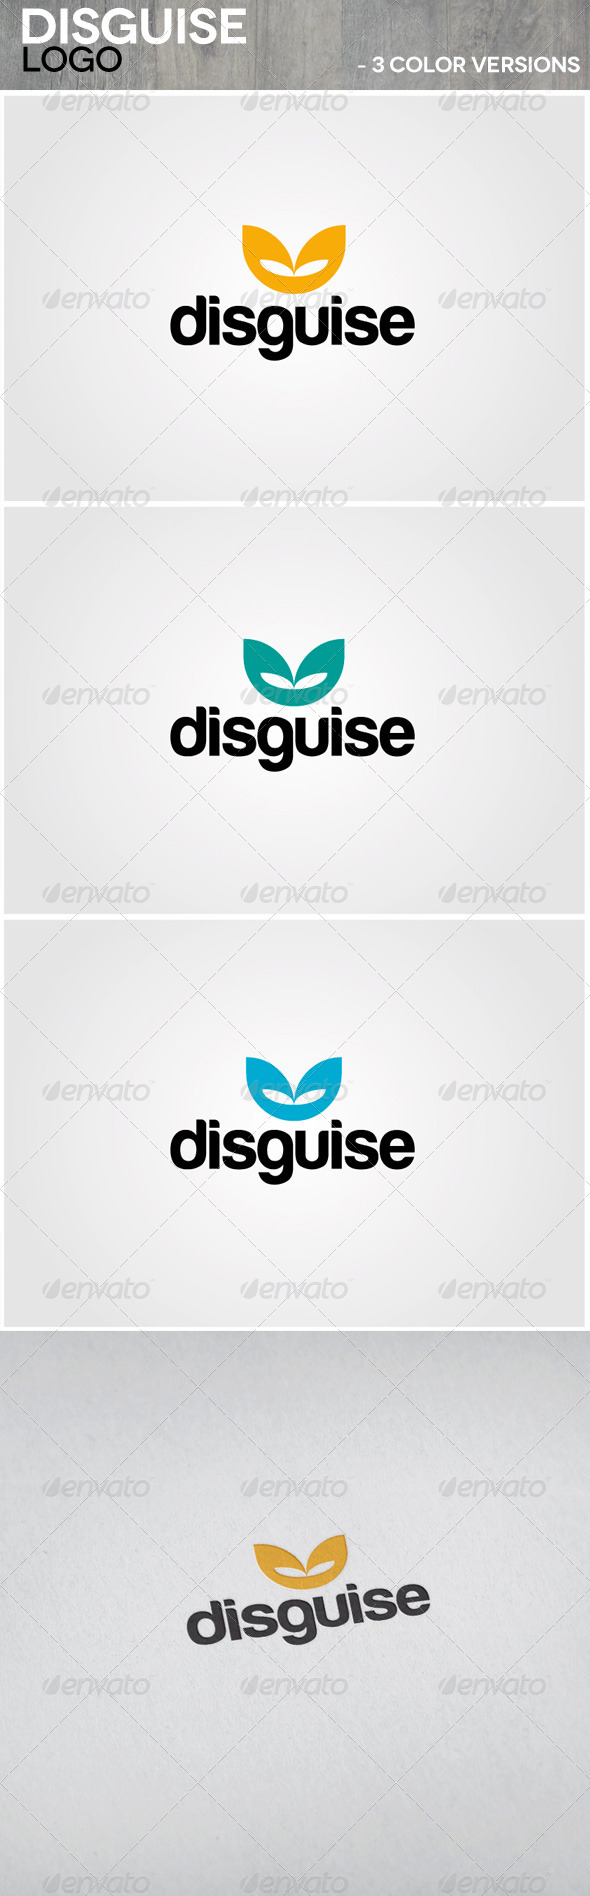 Disguise Logo - Vector Abstract